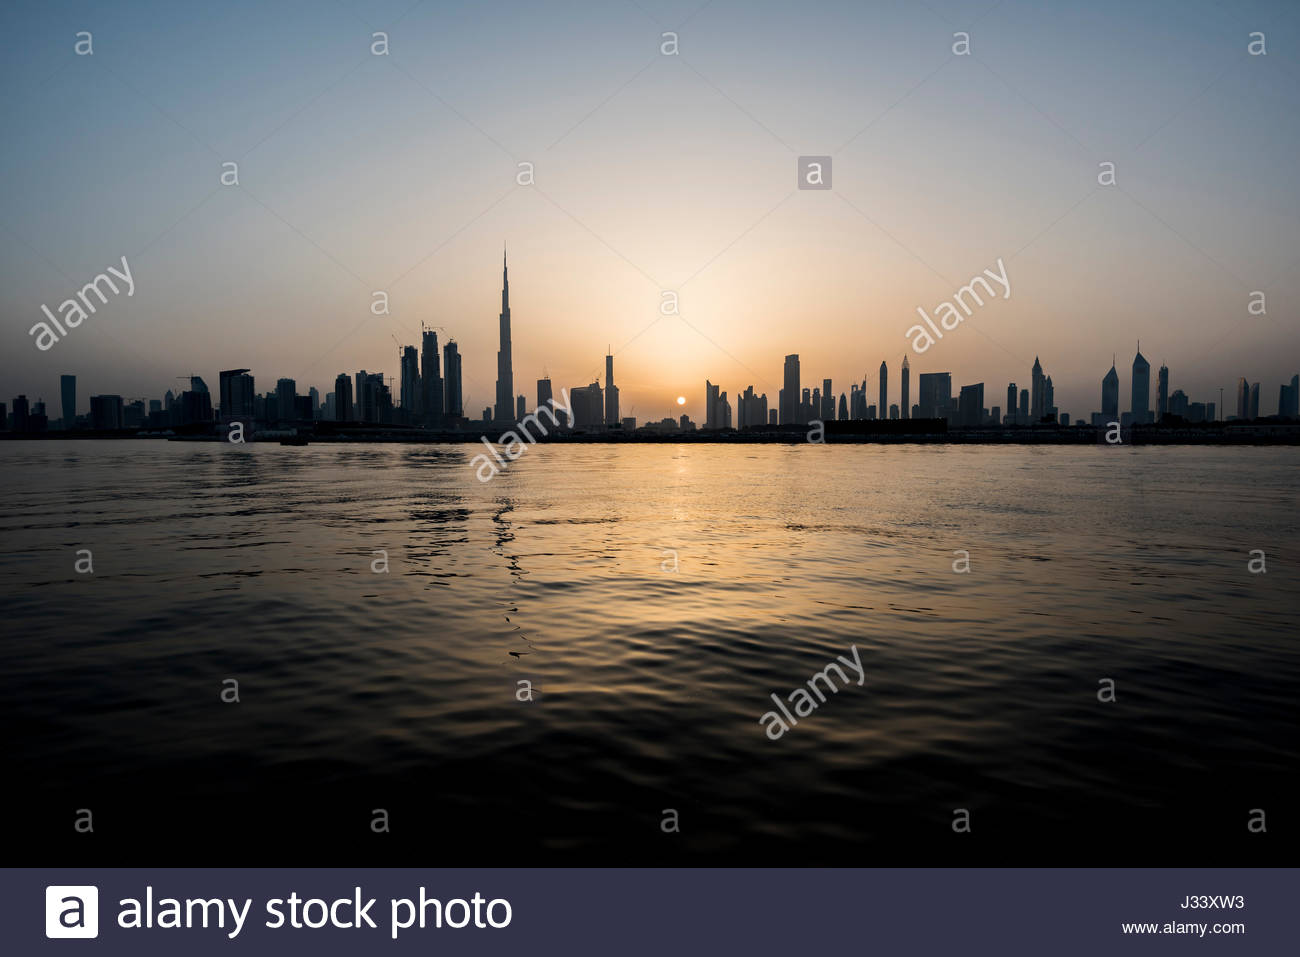 Silhouette of Dubai during a nice sunset on the city, view from the water canal, Ras Al Khor side. United Arab Emirates - Stock Image